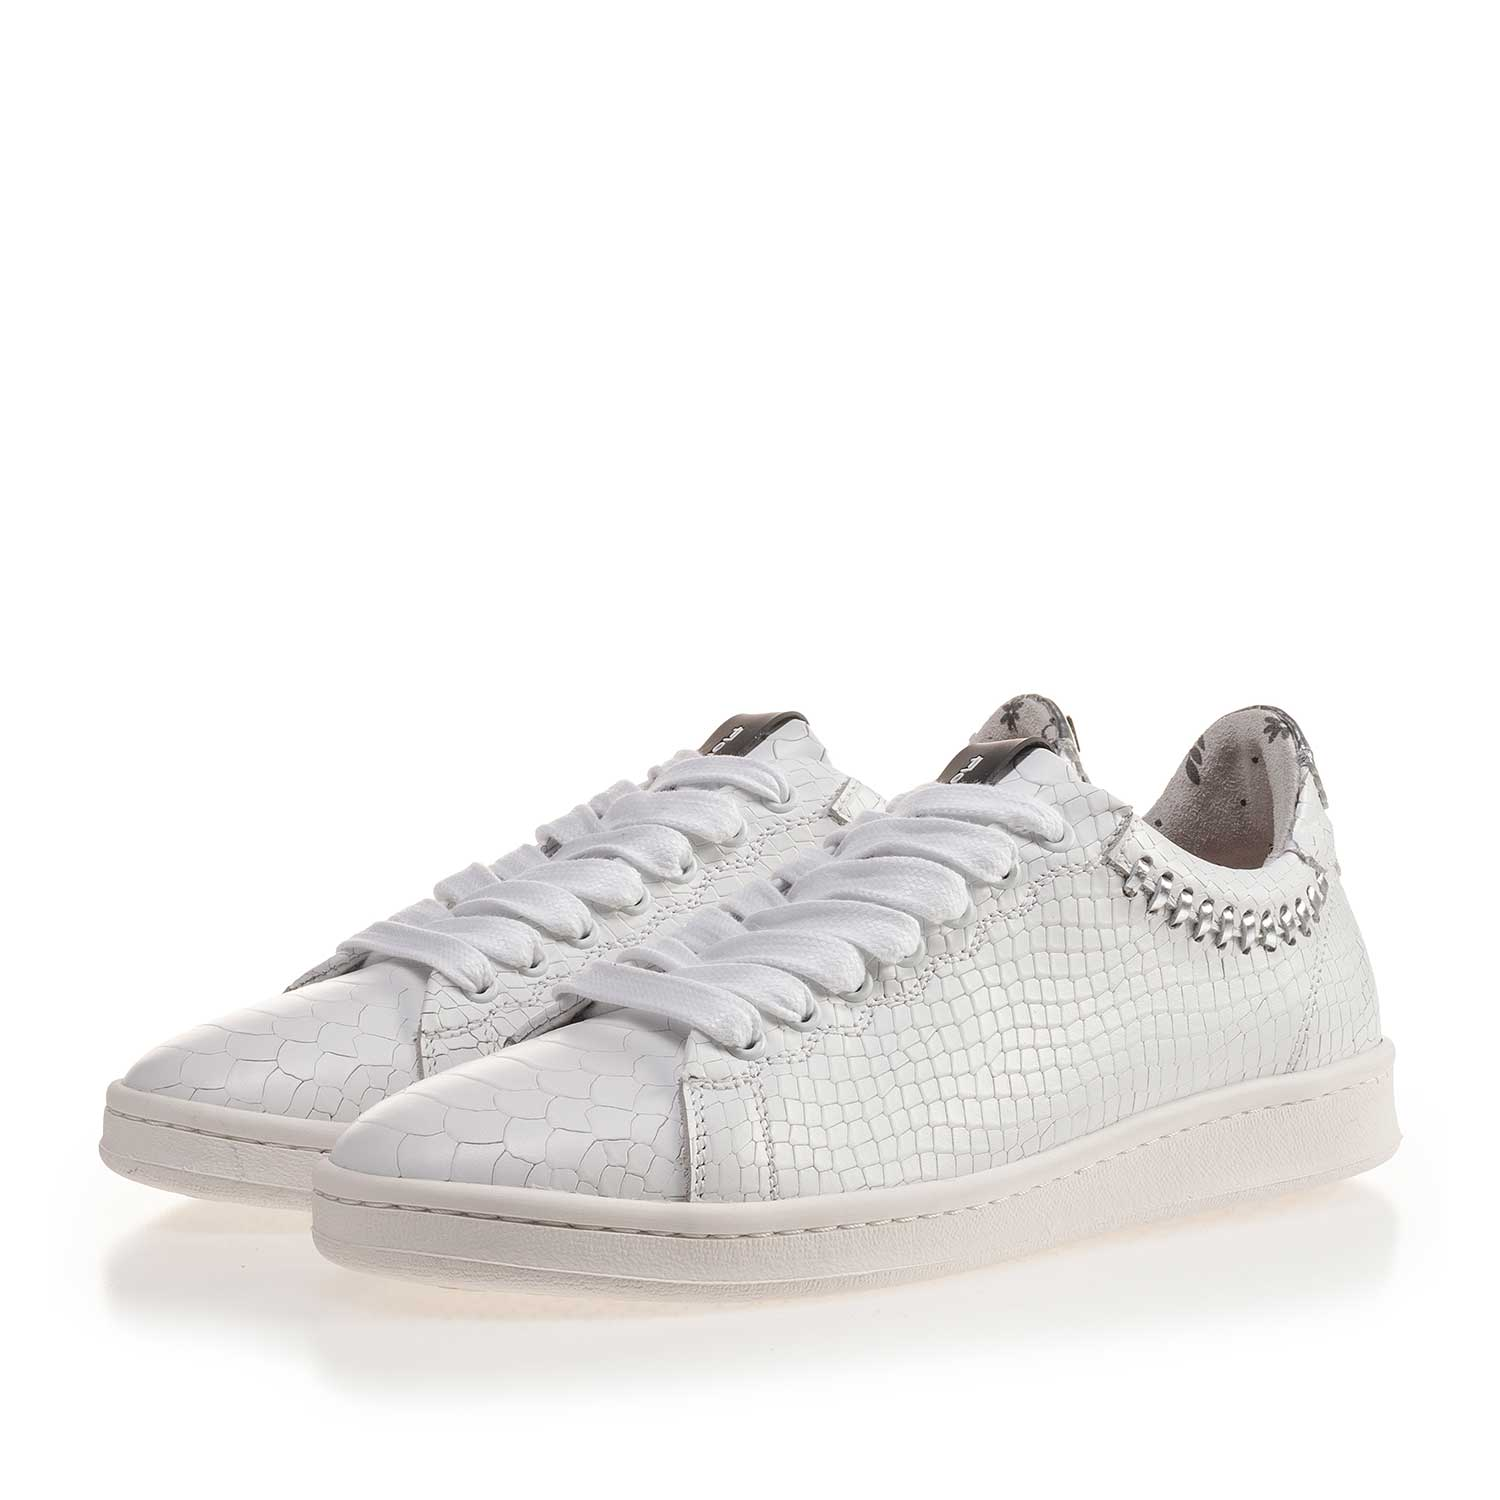 85251/00 - White leather sneaker with snake print